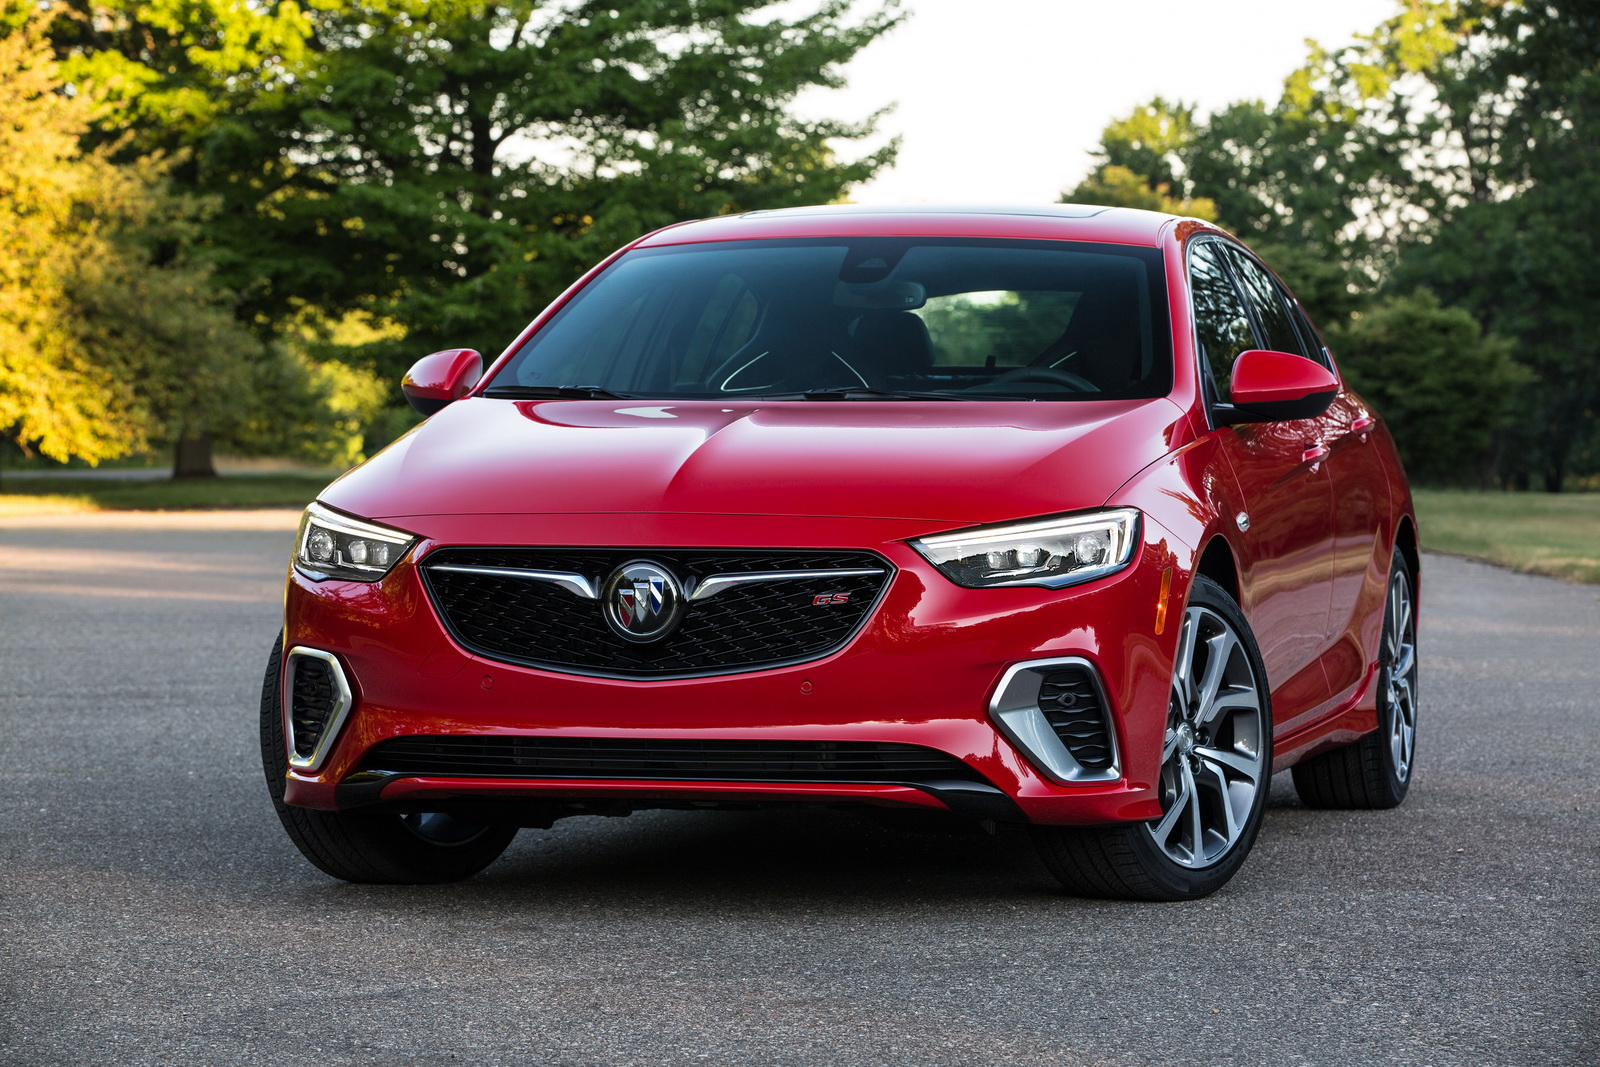 2018-Buick-Regal-GS-04.jpg